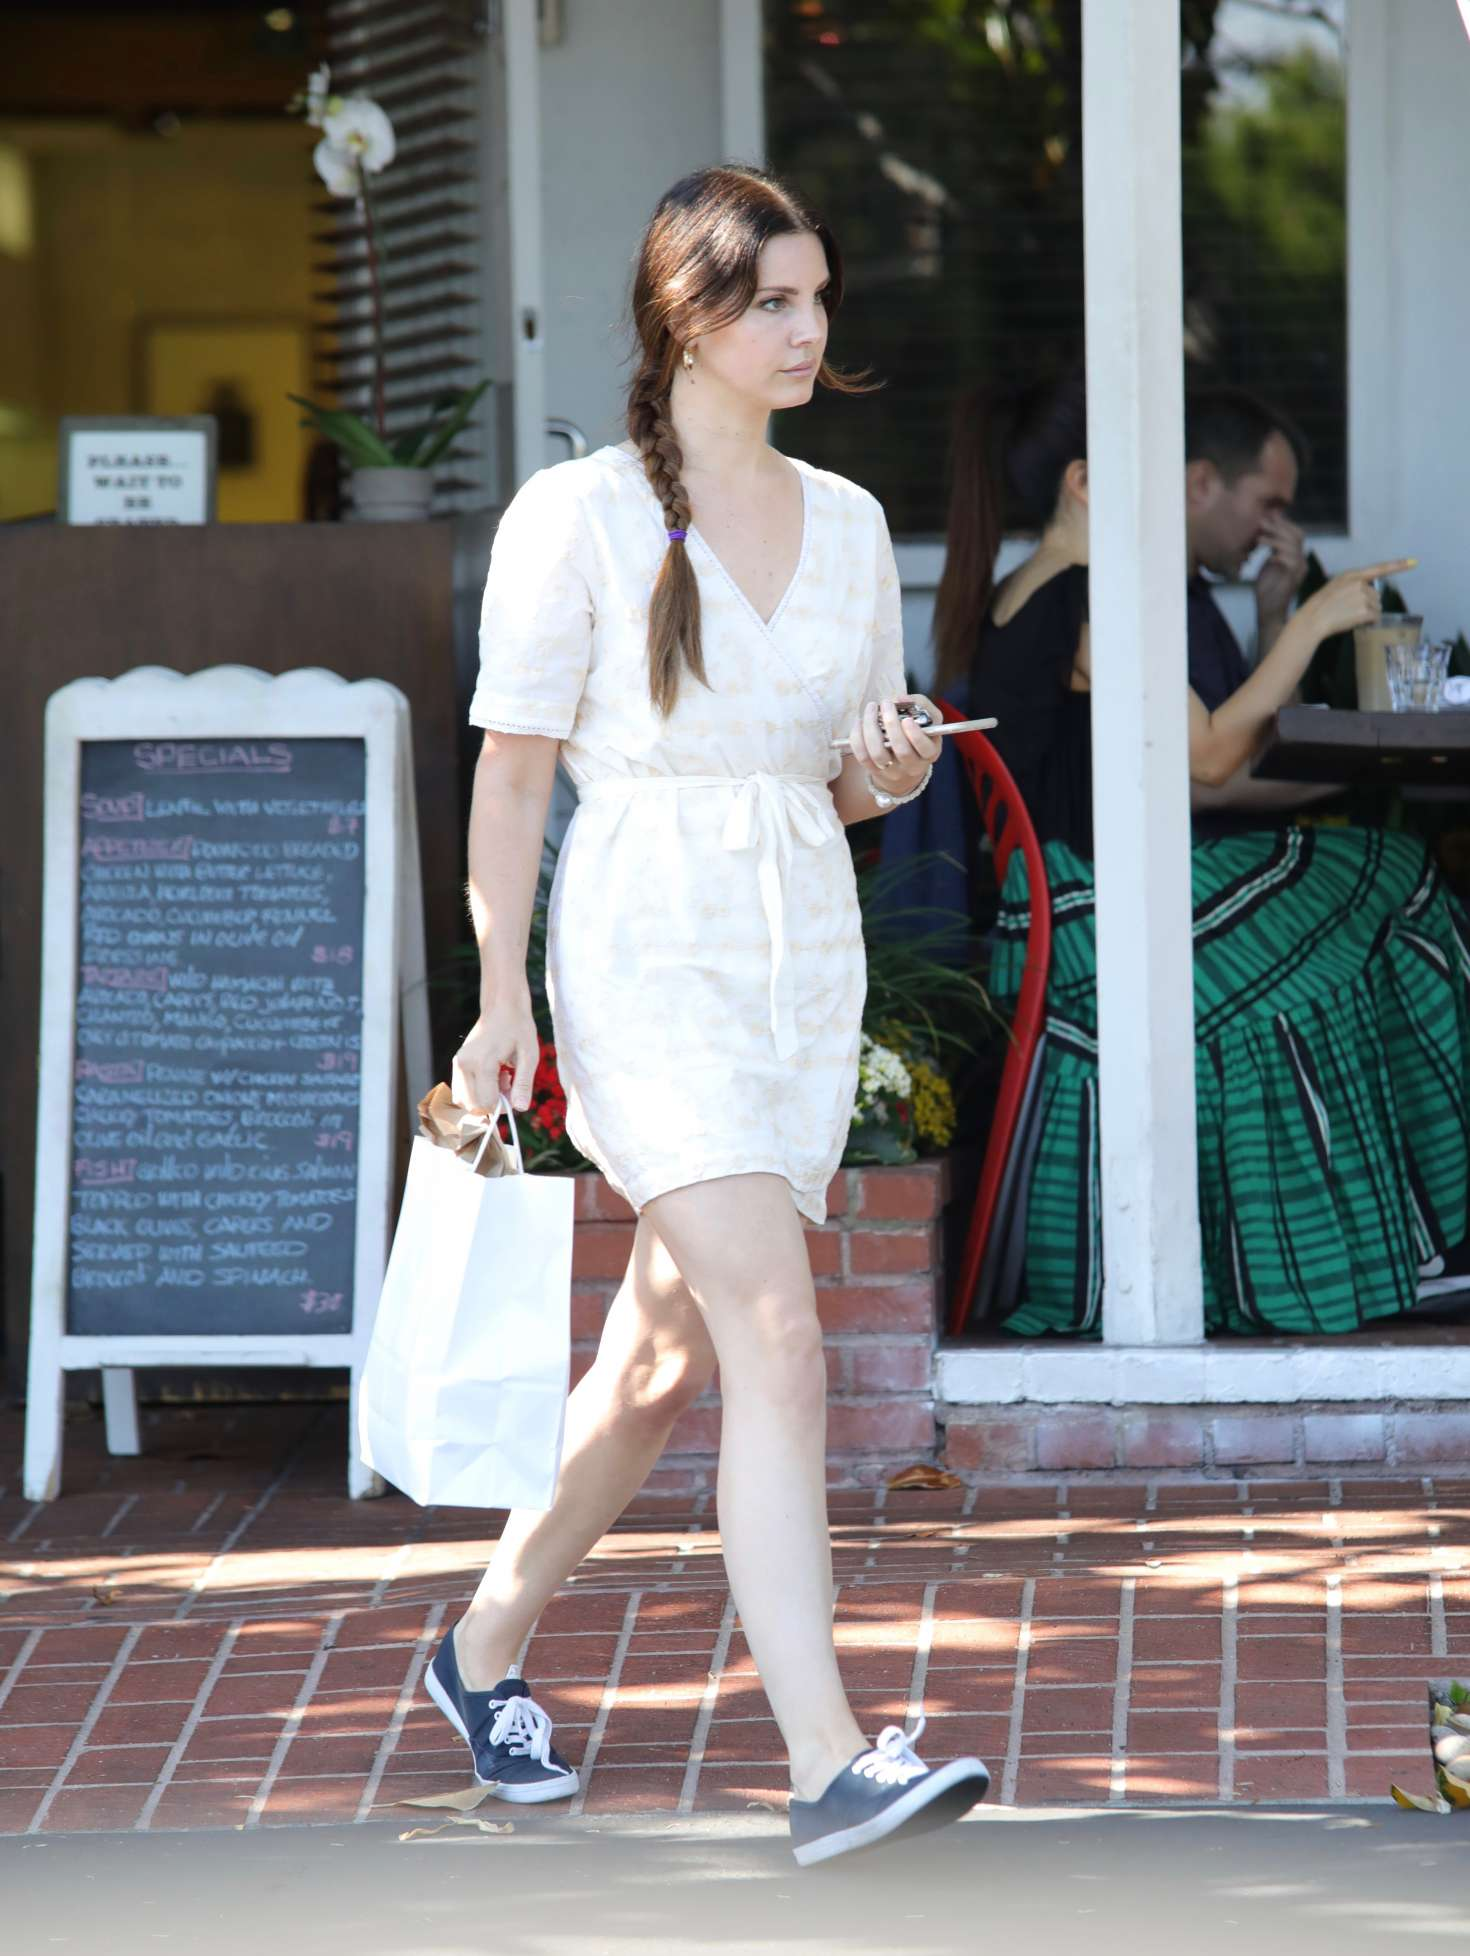 Watch Lana del rey at mauro cafe in los angeles video